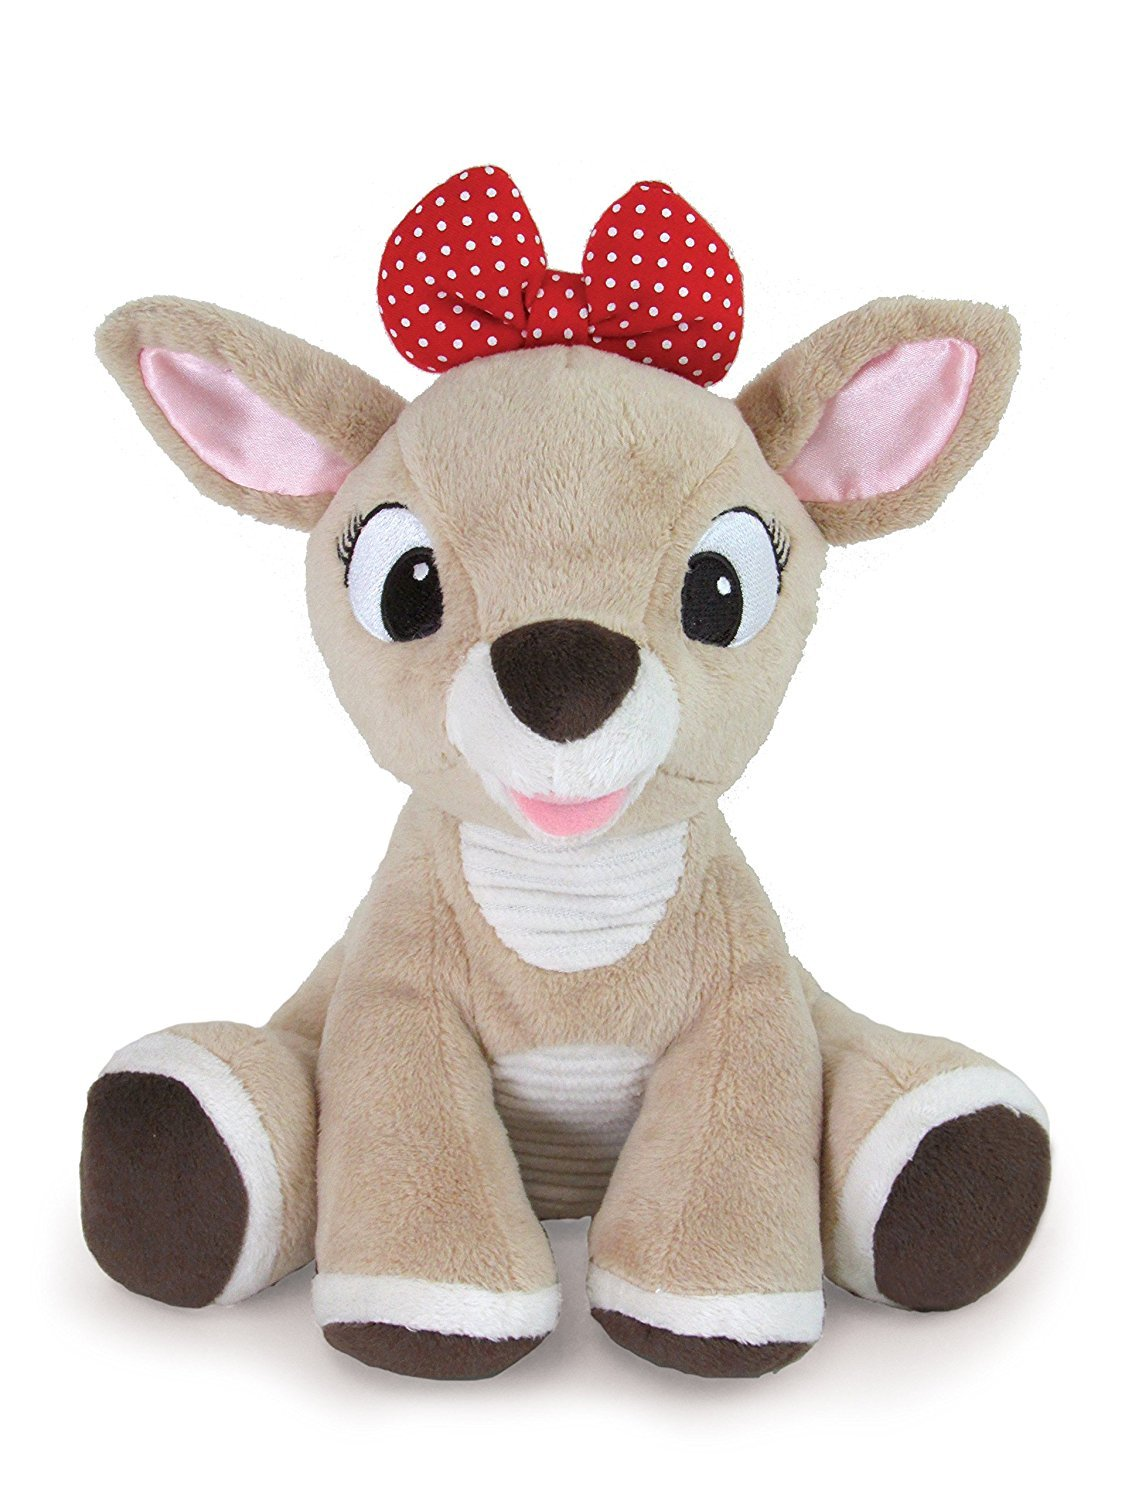 Kids Preferred Rudolph the Red-Nosed Reindeer, Clarice Stuffed Animal, 8' 8 23017